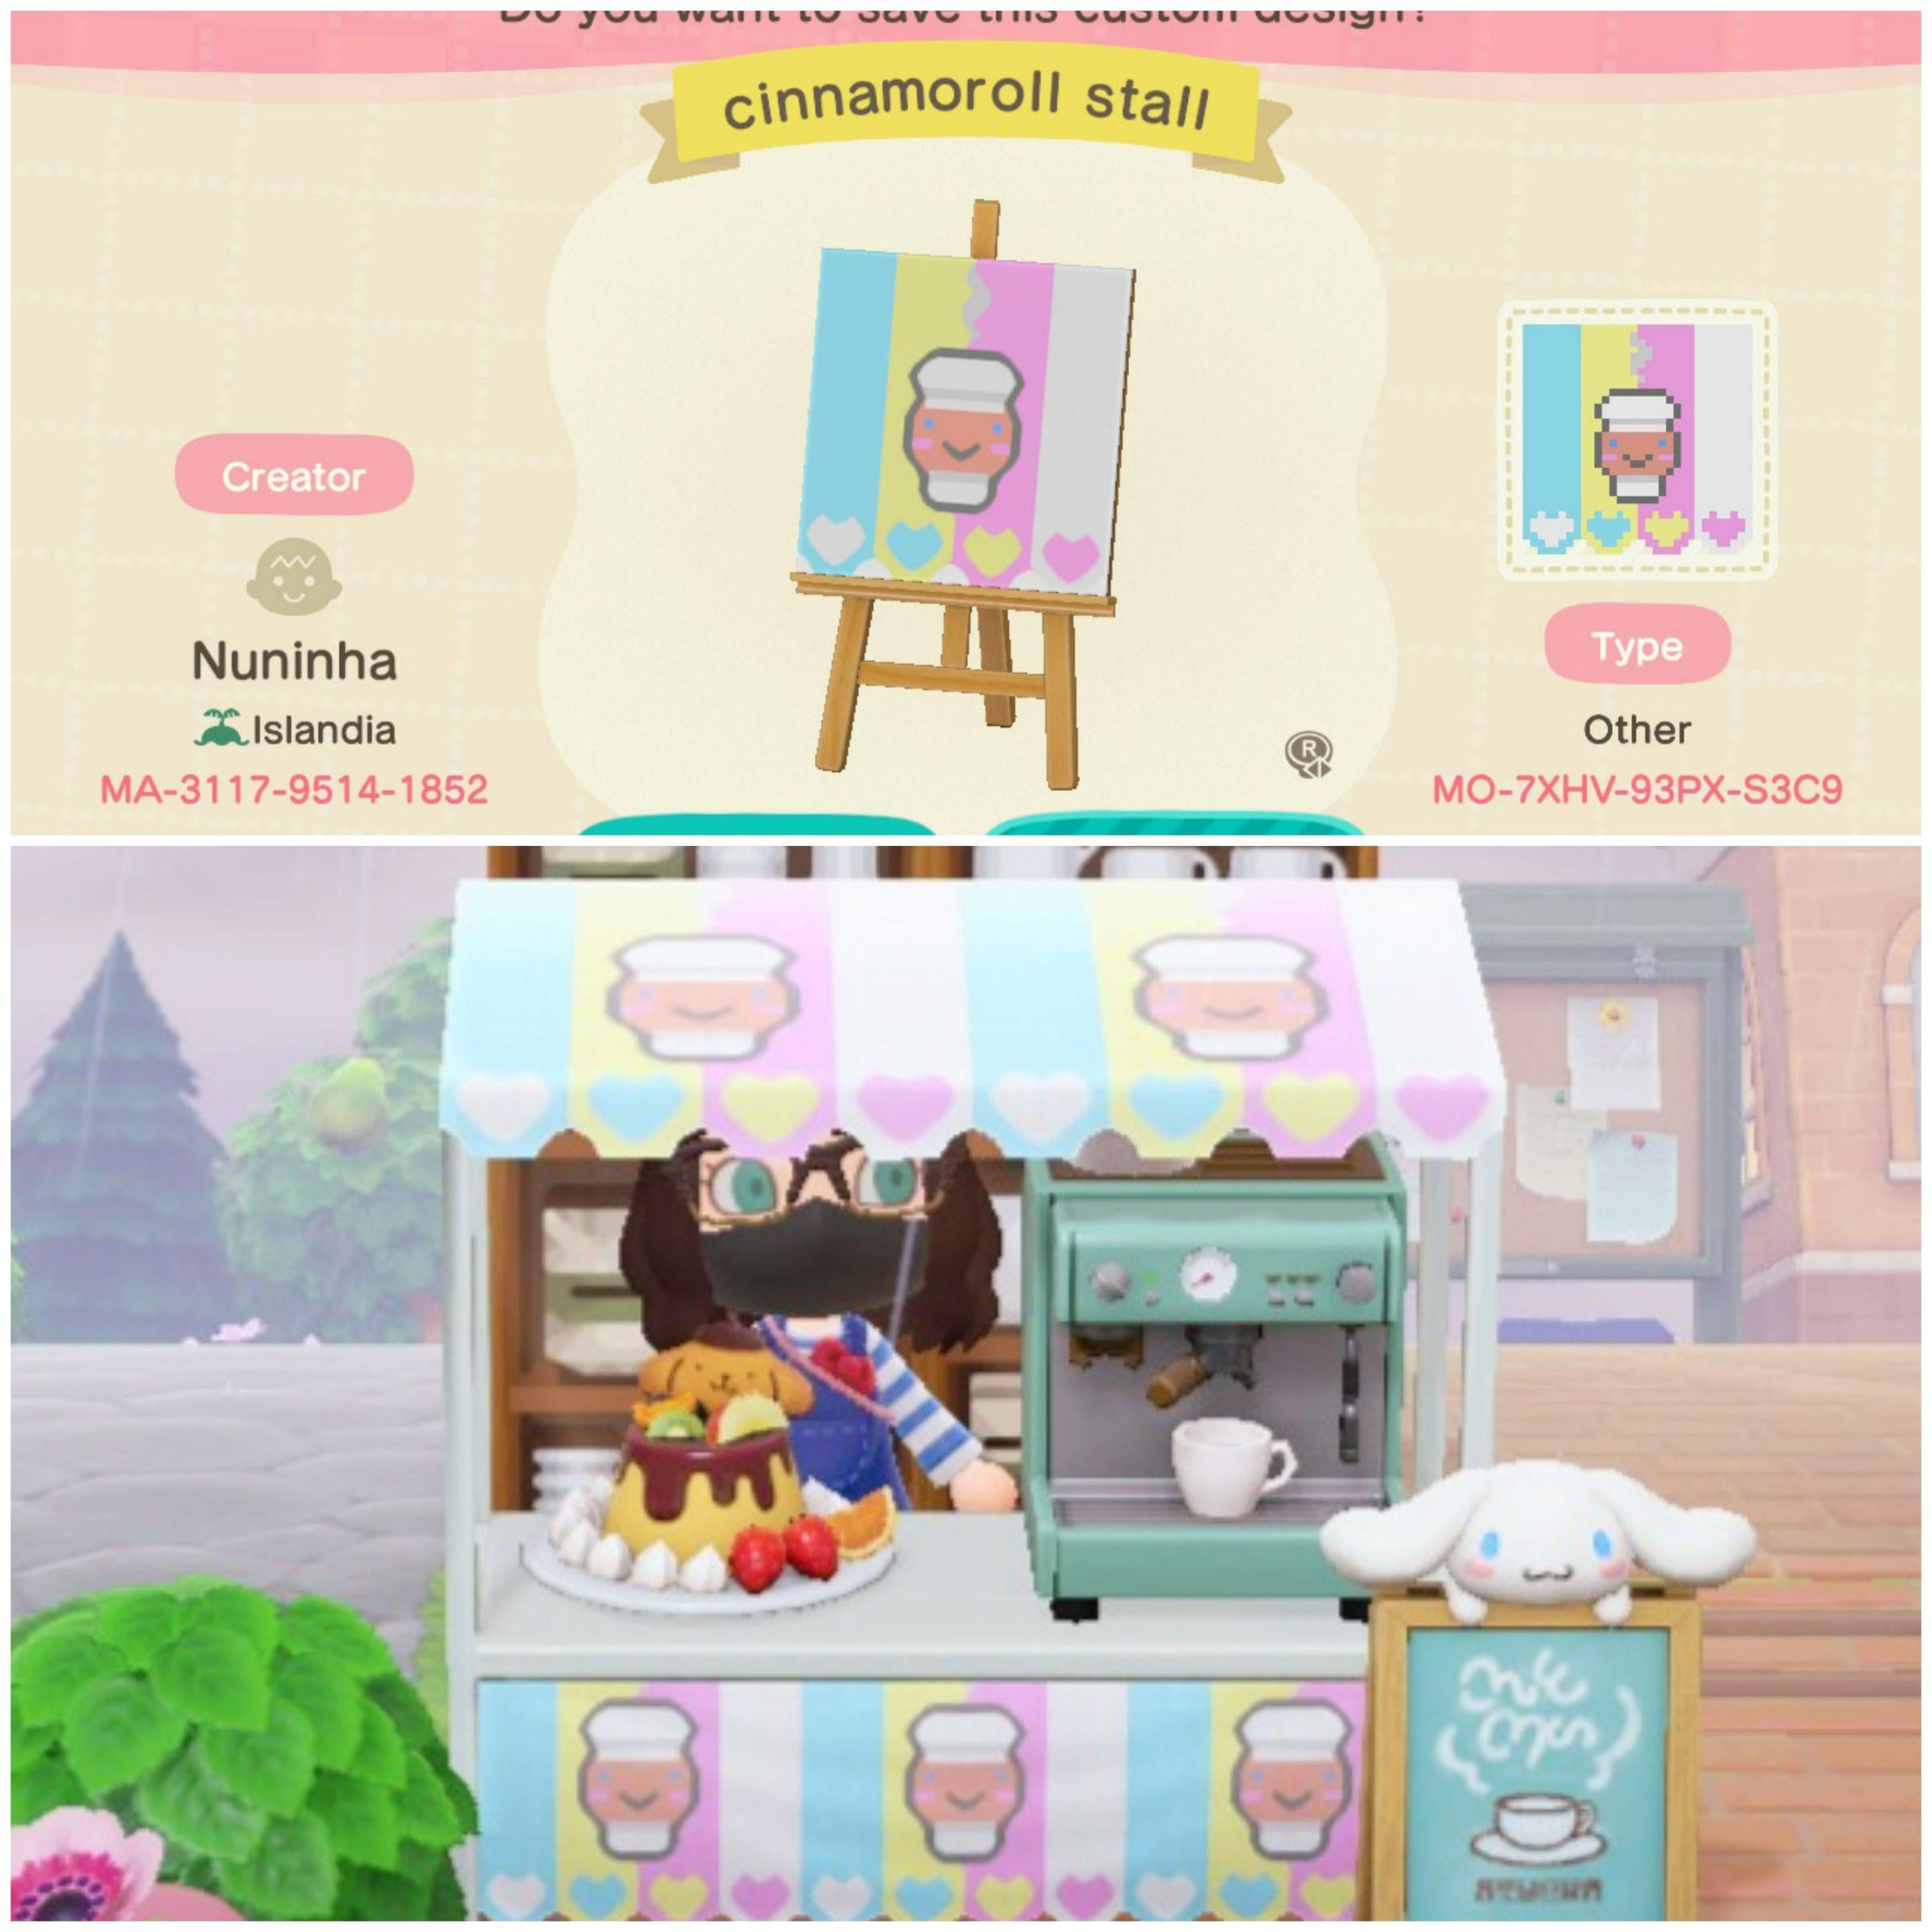 My first upload to the design portal - A Cinnamoroll Café stall